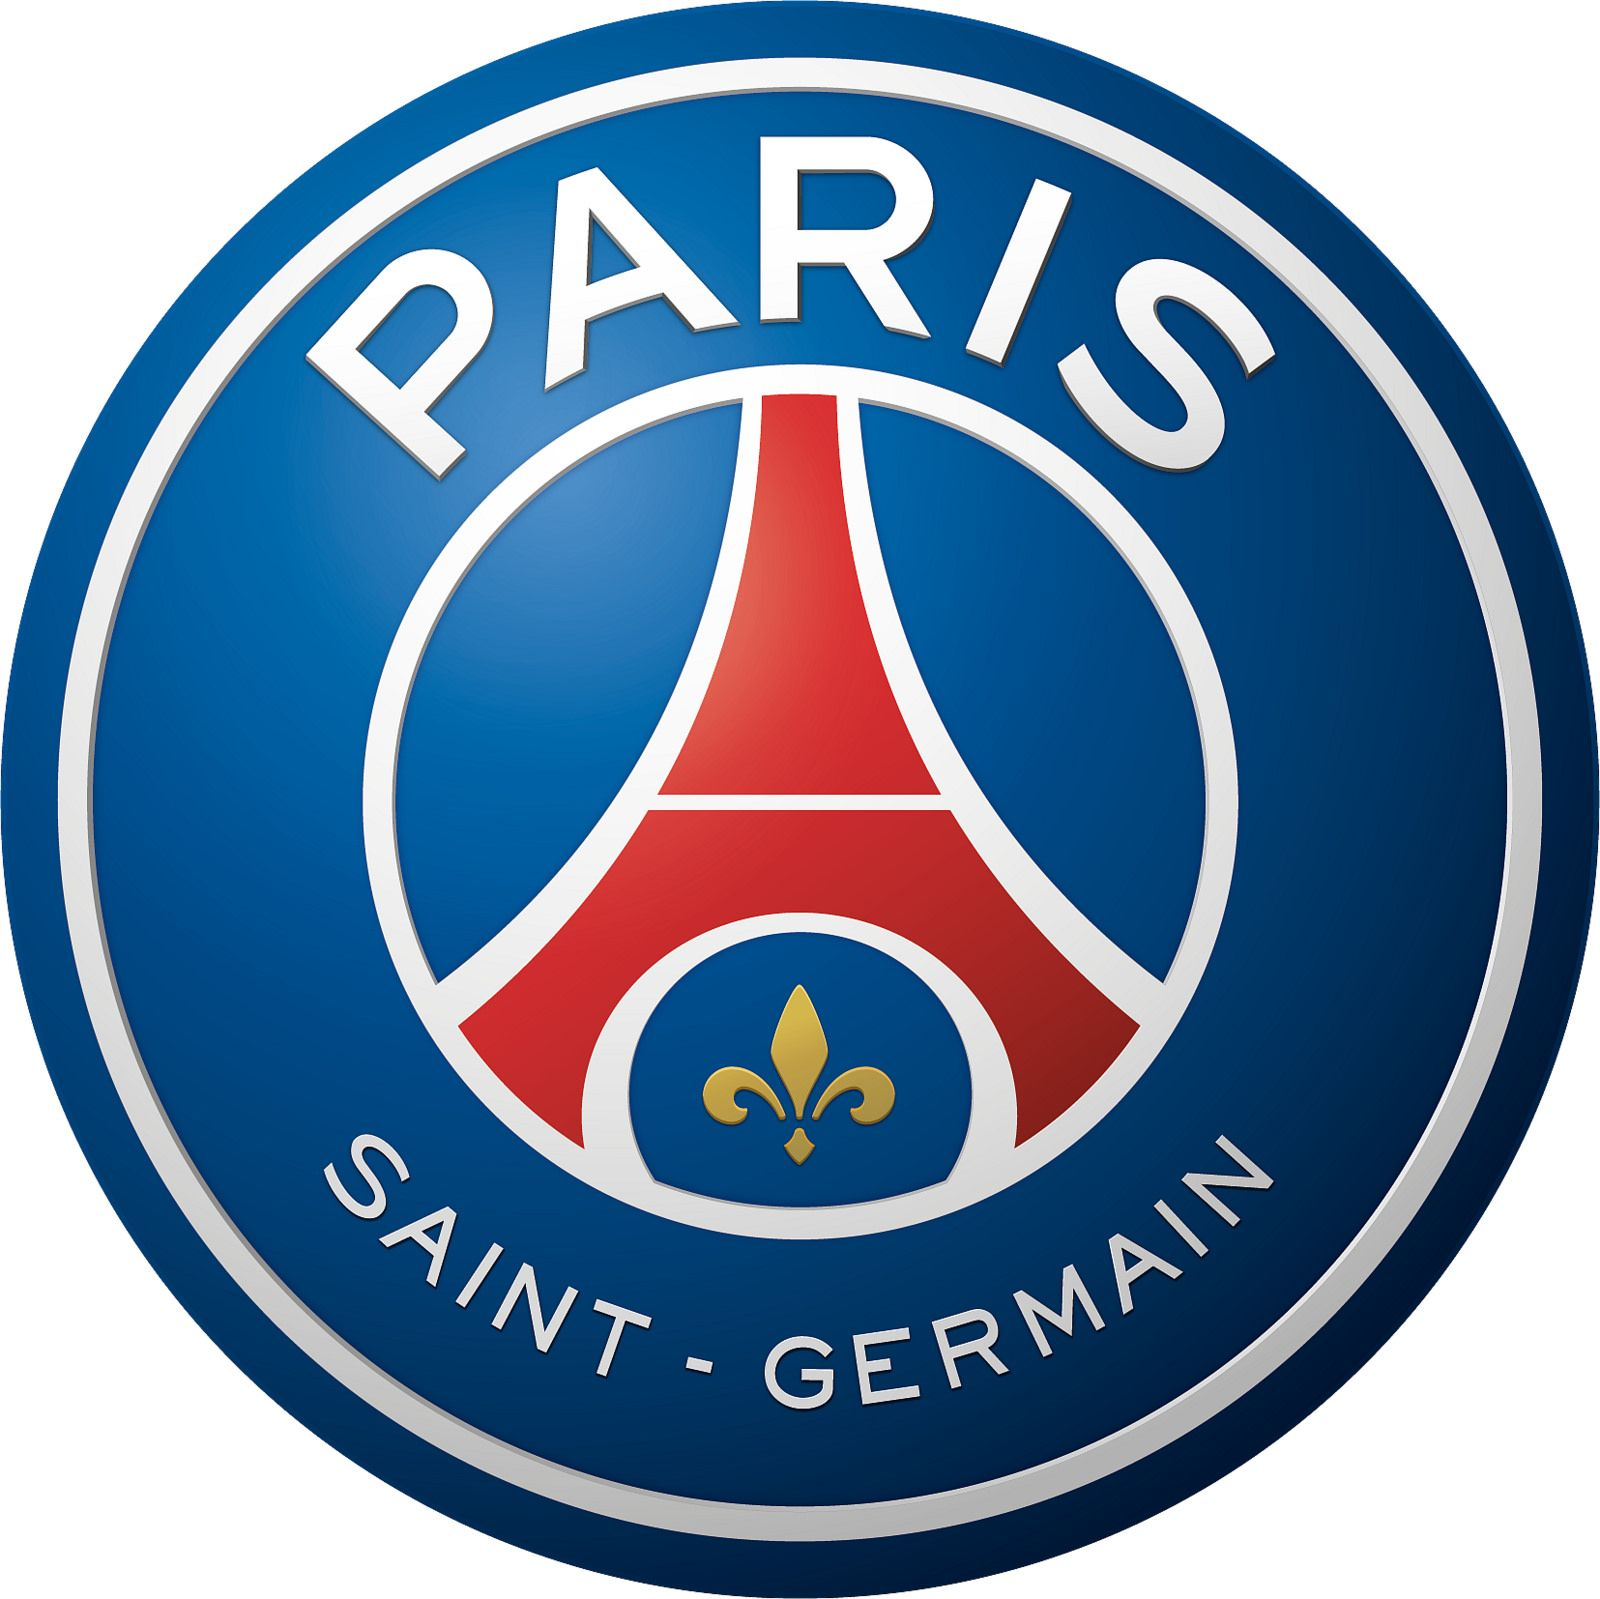 Psg Paris Saint Germain Football Club Paris Saint Germain Saint Germain Paris Saint